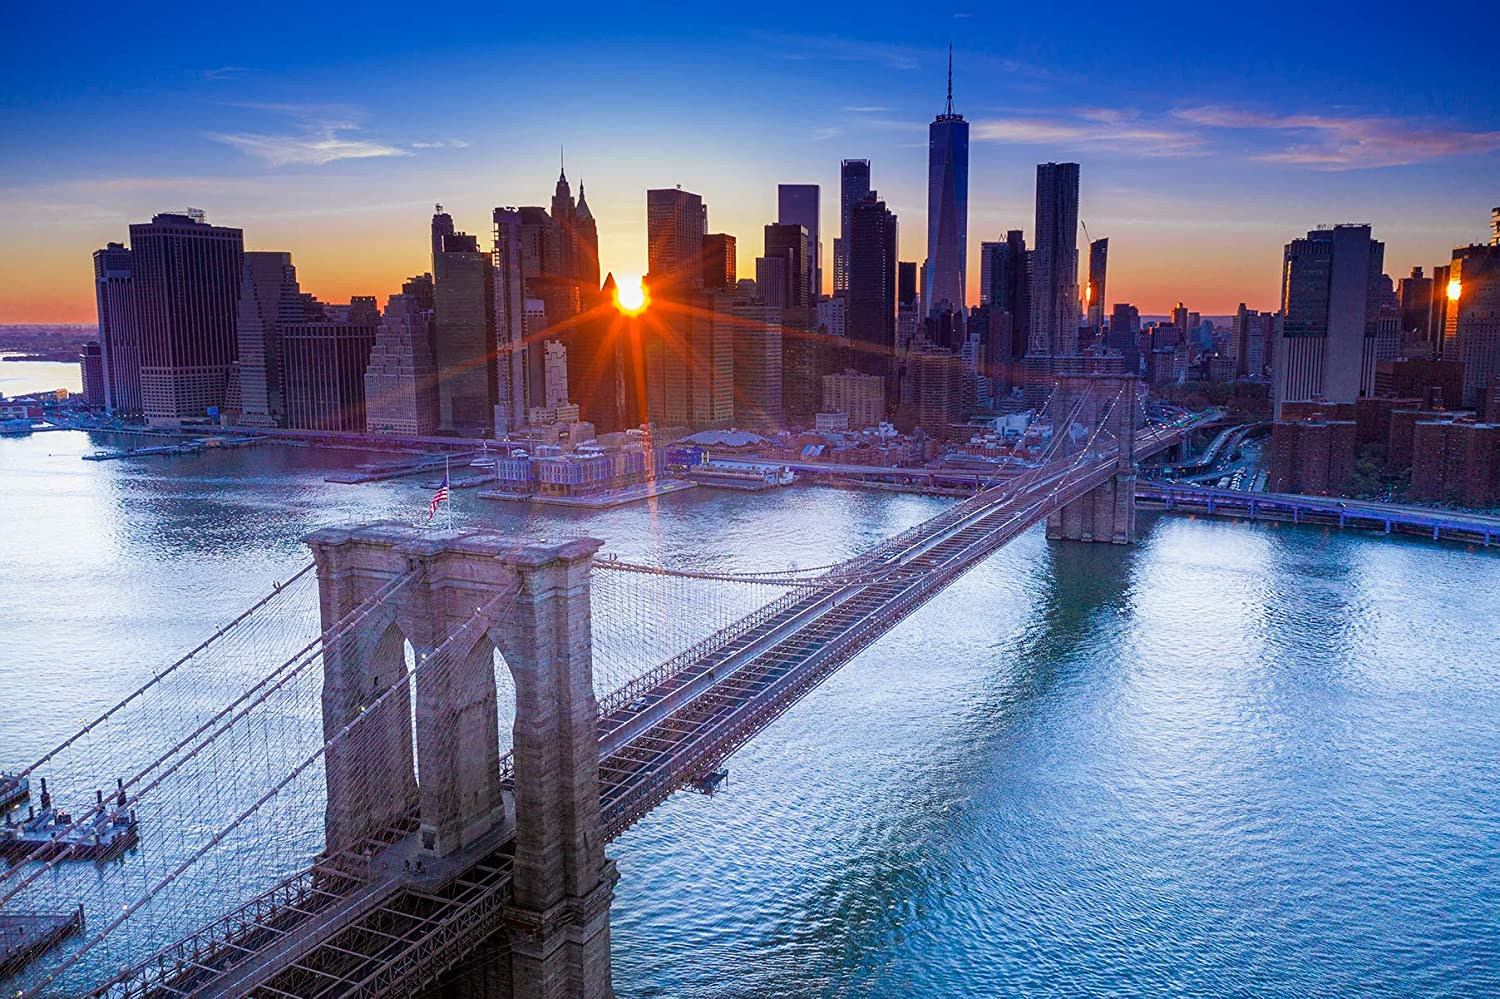 MELIS New York City Skyline & Brooklyn Bridge at Sunset. High Definition Aerial Photo of New York. Canvas Wall Art Home Decor. 16x24